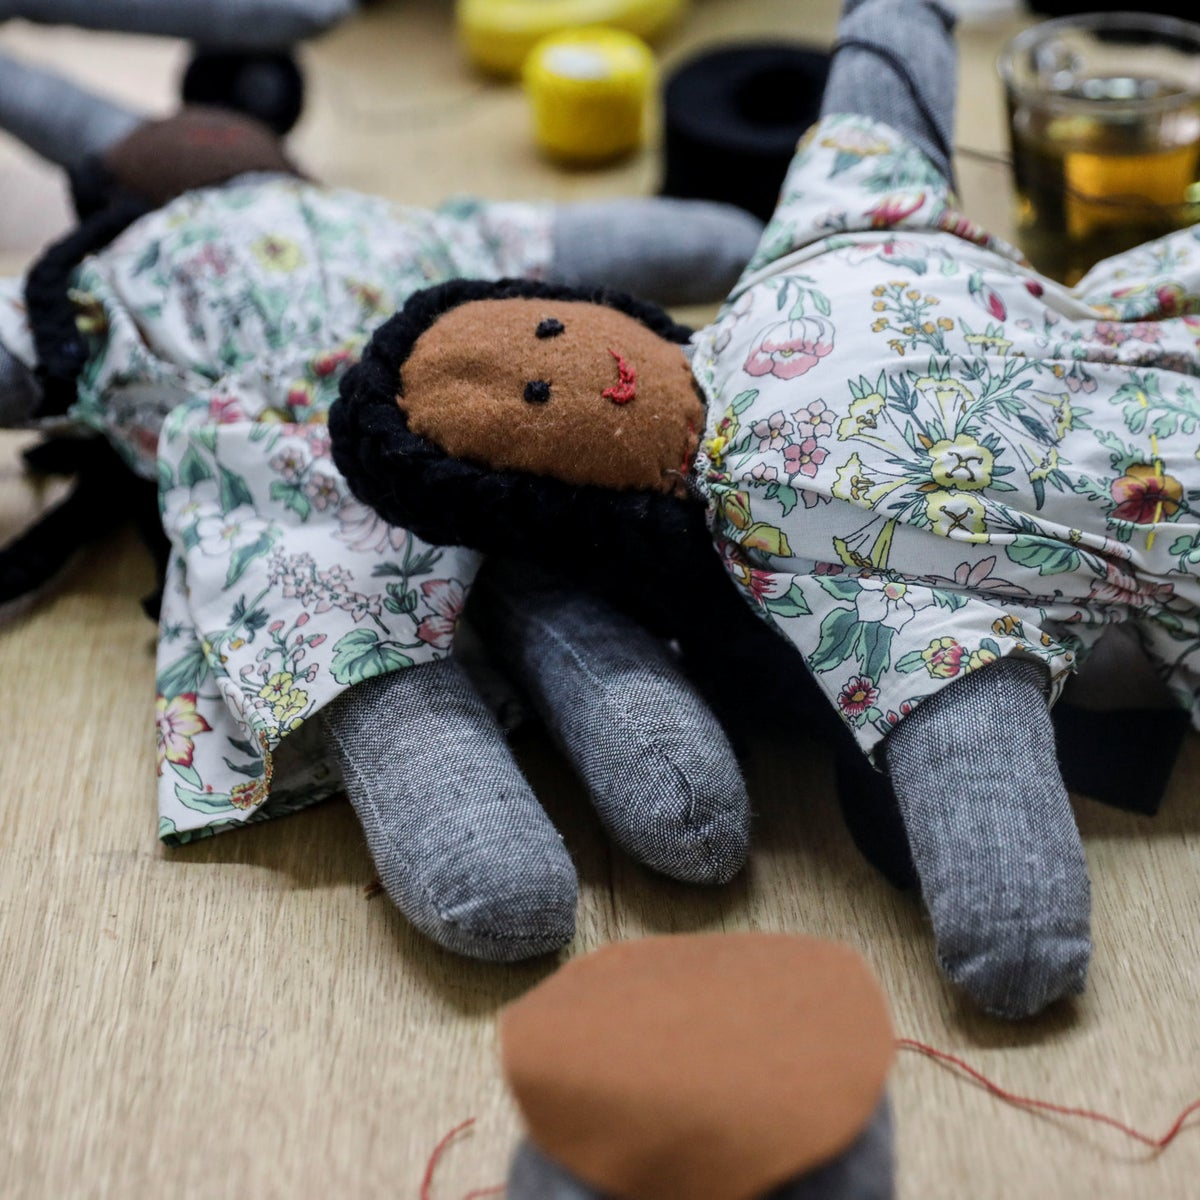 Dolls made by asylum seekers through the Kuchinate project.